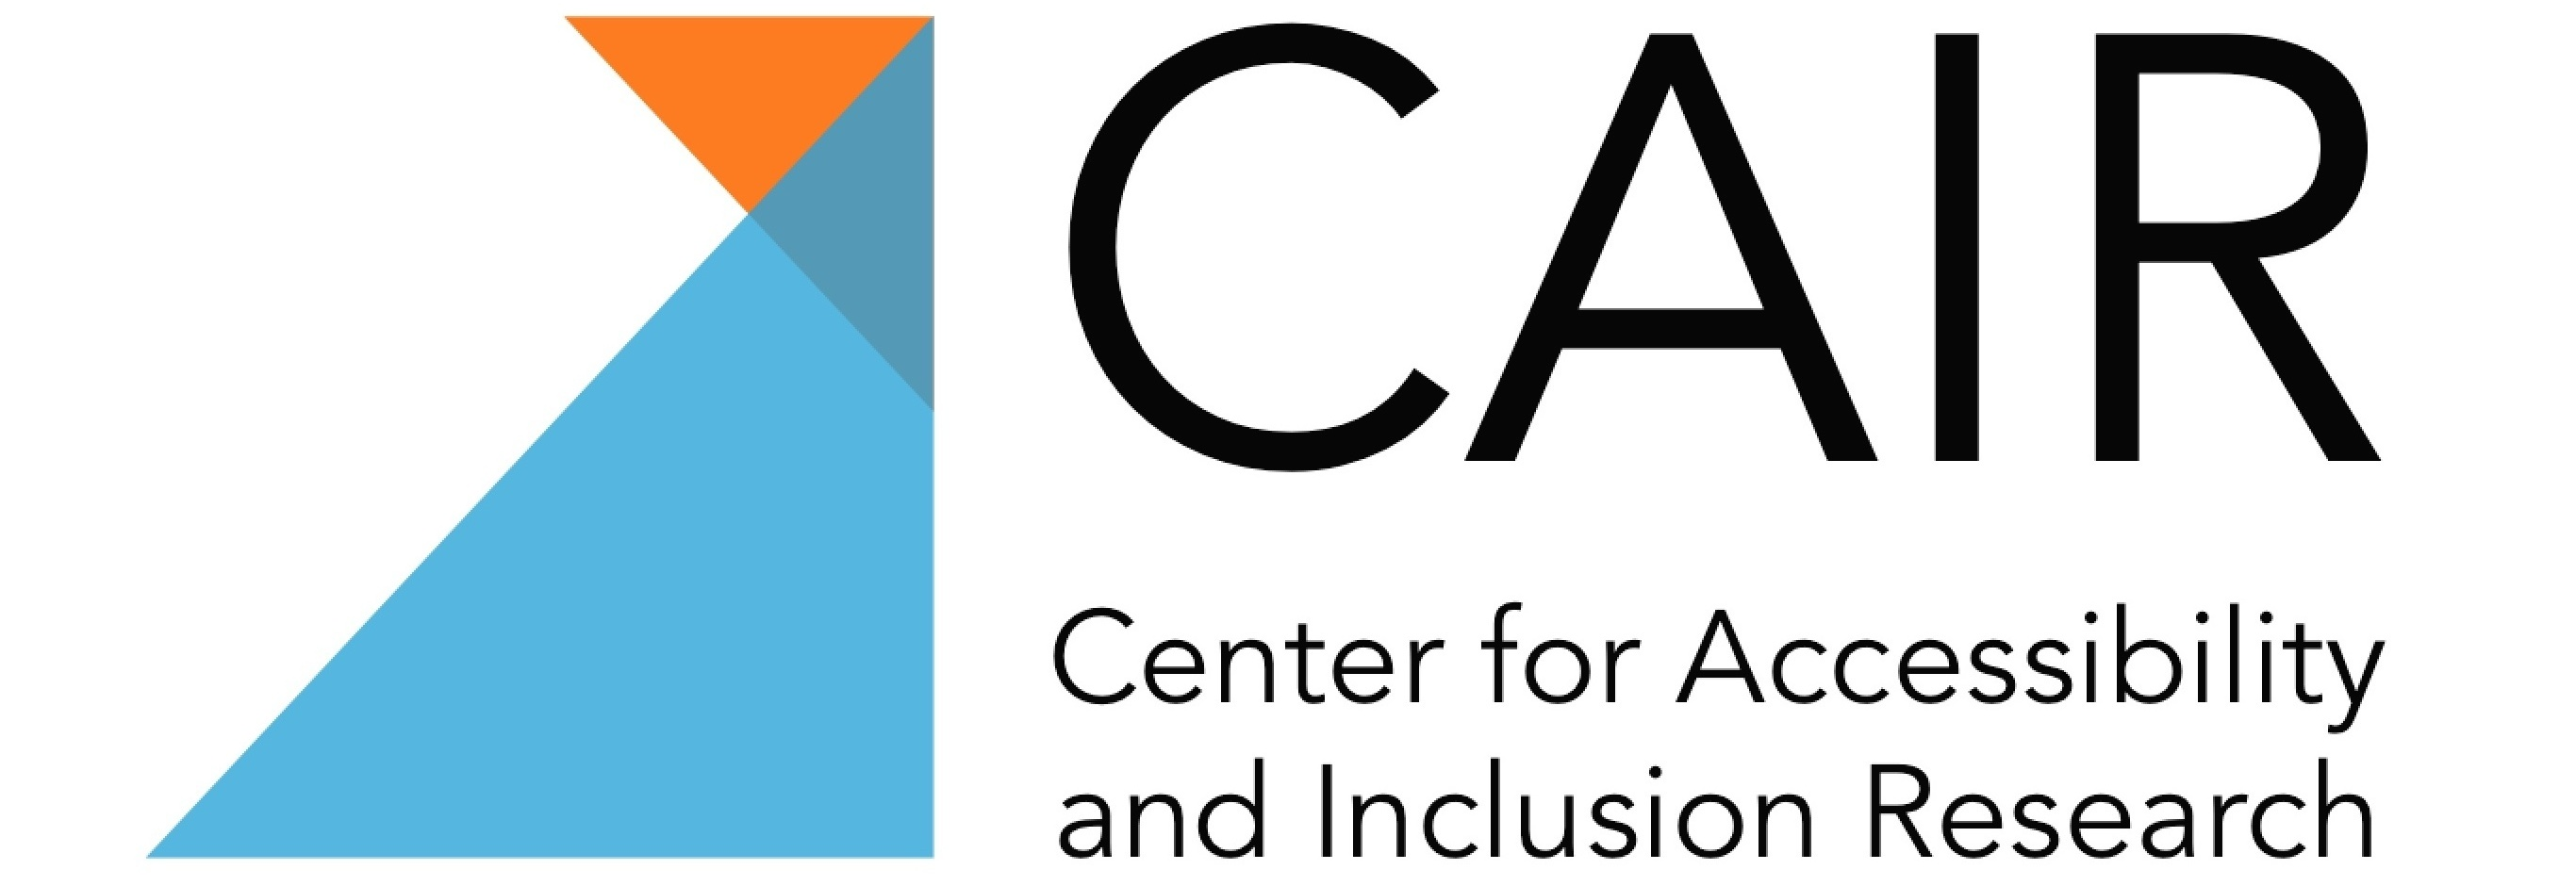 Center for Accessibility and Inclusion Research (CAIR)